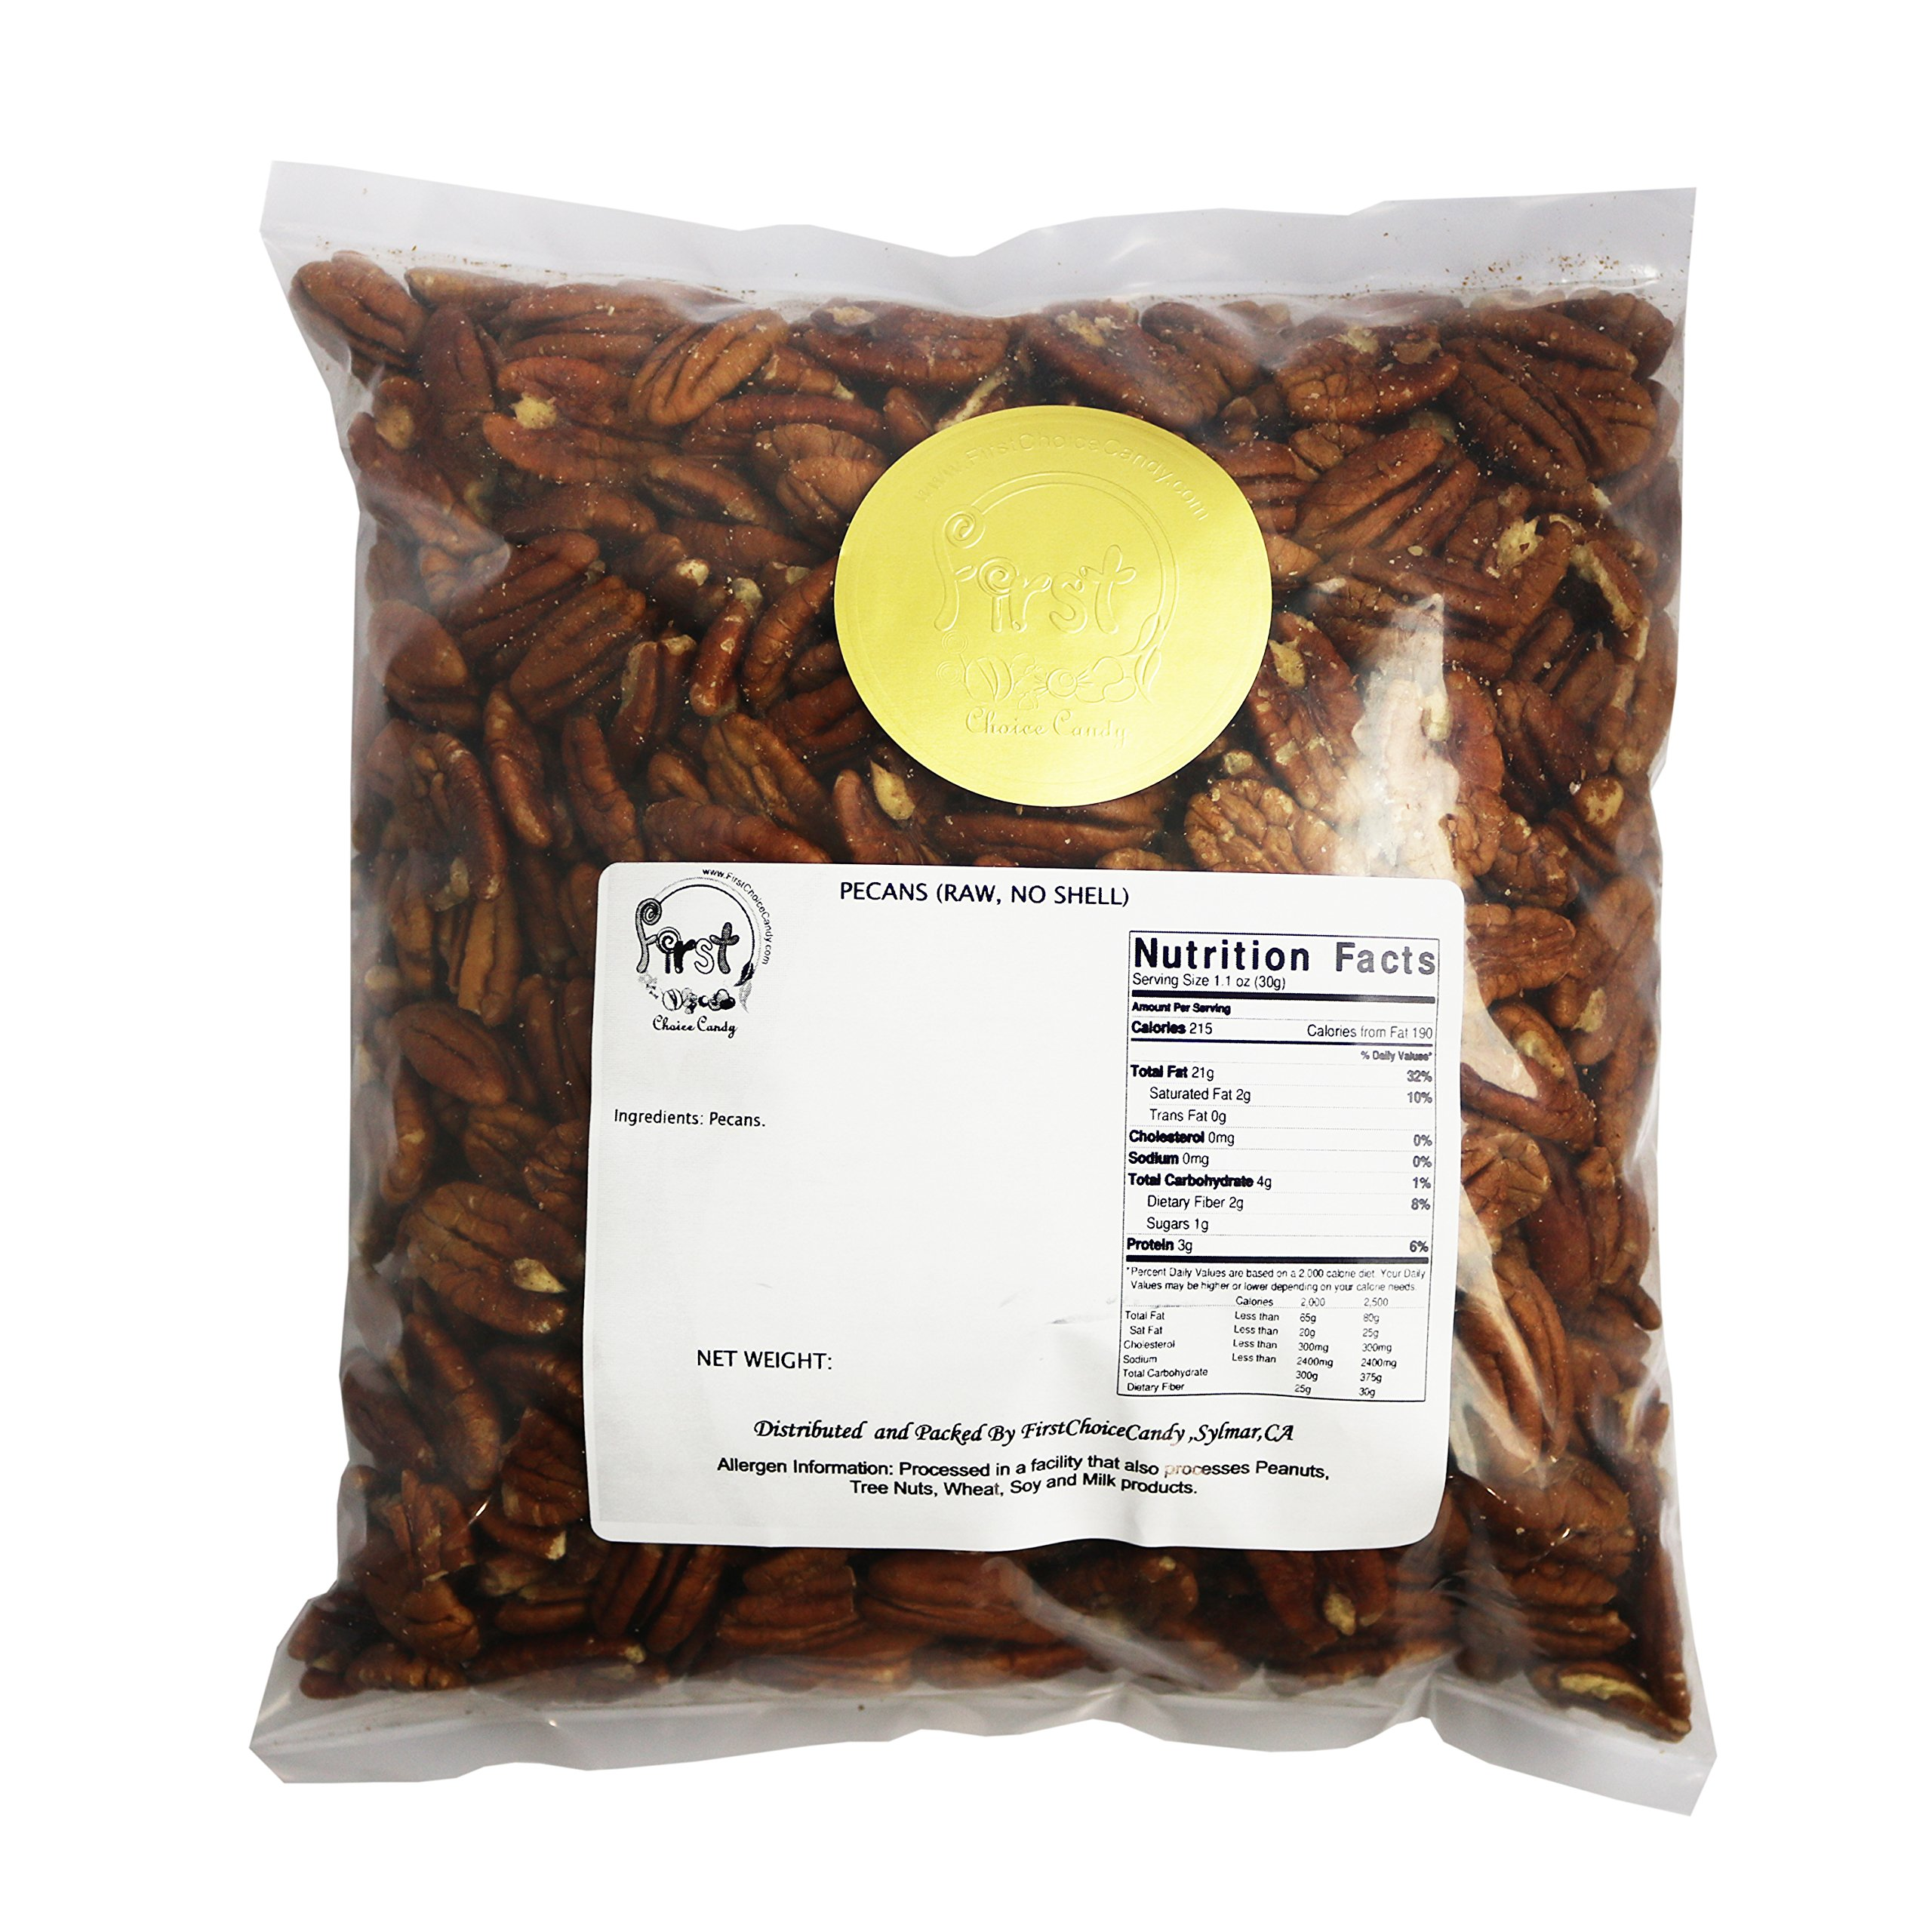 Raw Pecans -No Shell- 5 Pound Bulk Bag by FirstChoiceCandy